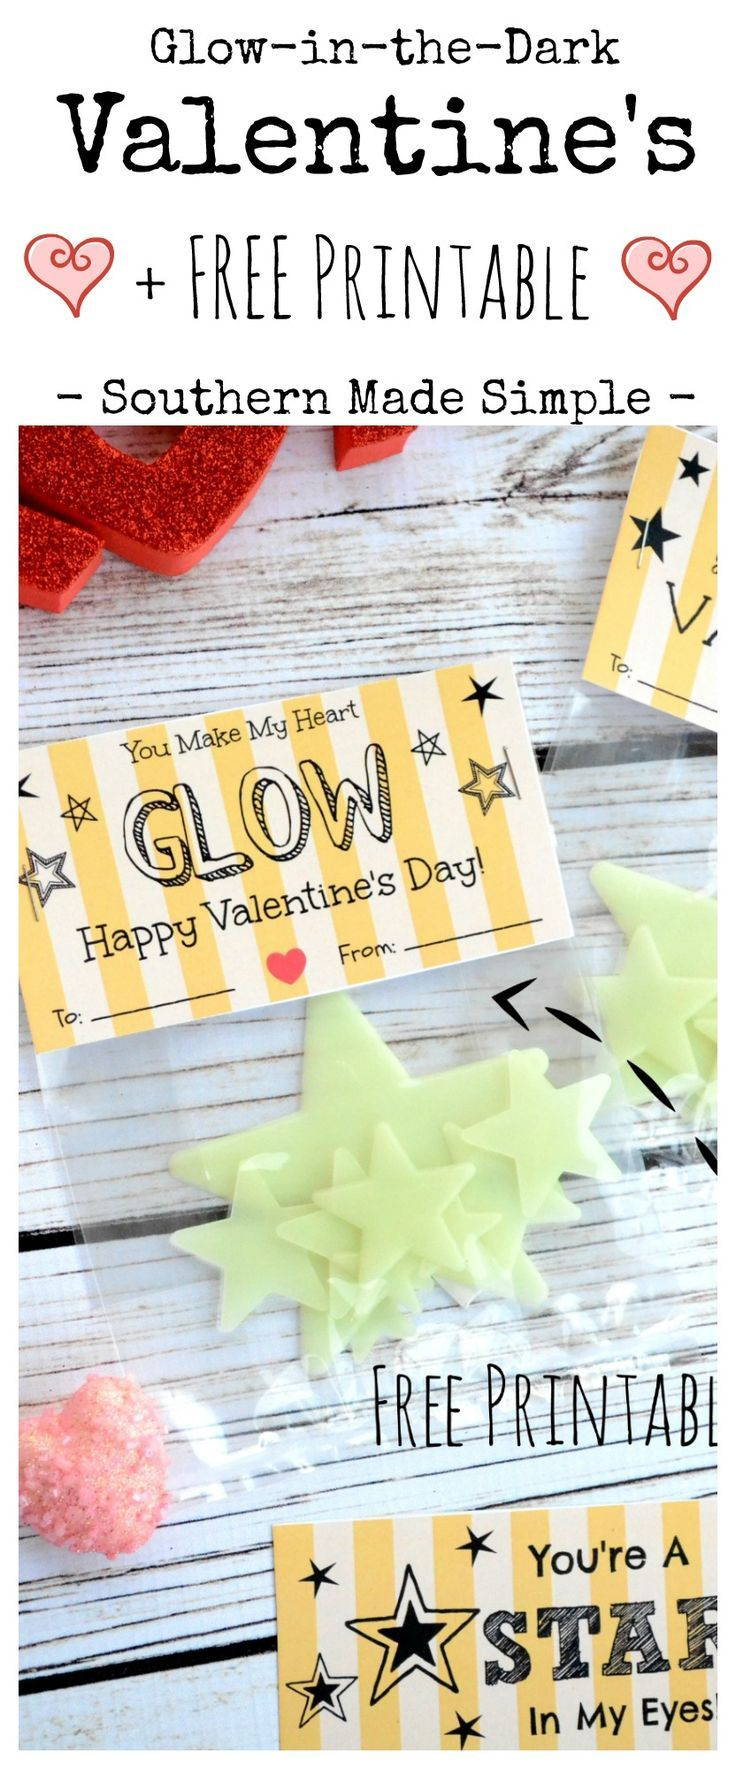 Glow in the dark Valentine's Day Cards with FREE Printable! Ditch the candy and grab these fun glow stars to give to your Valentine!